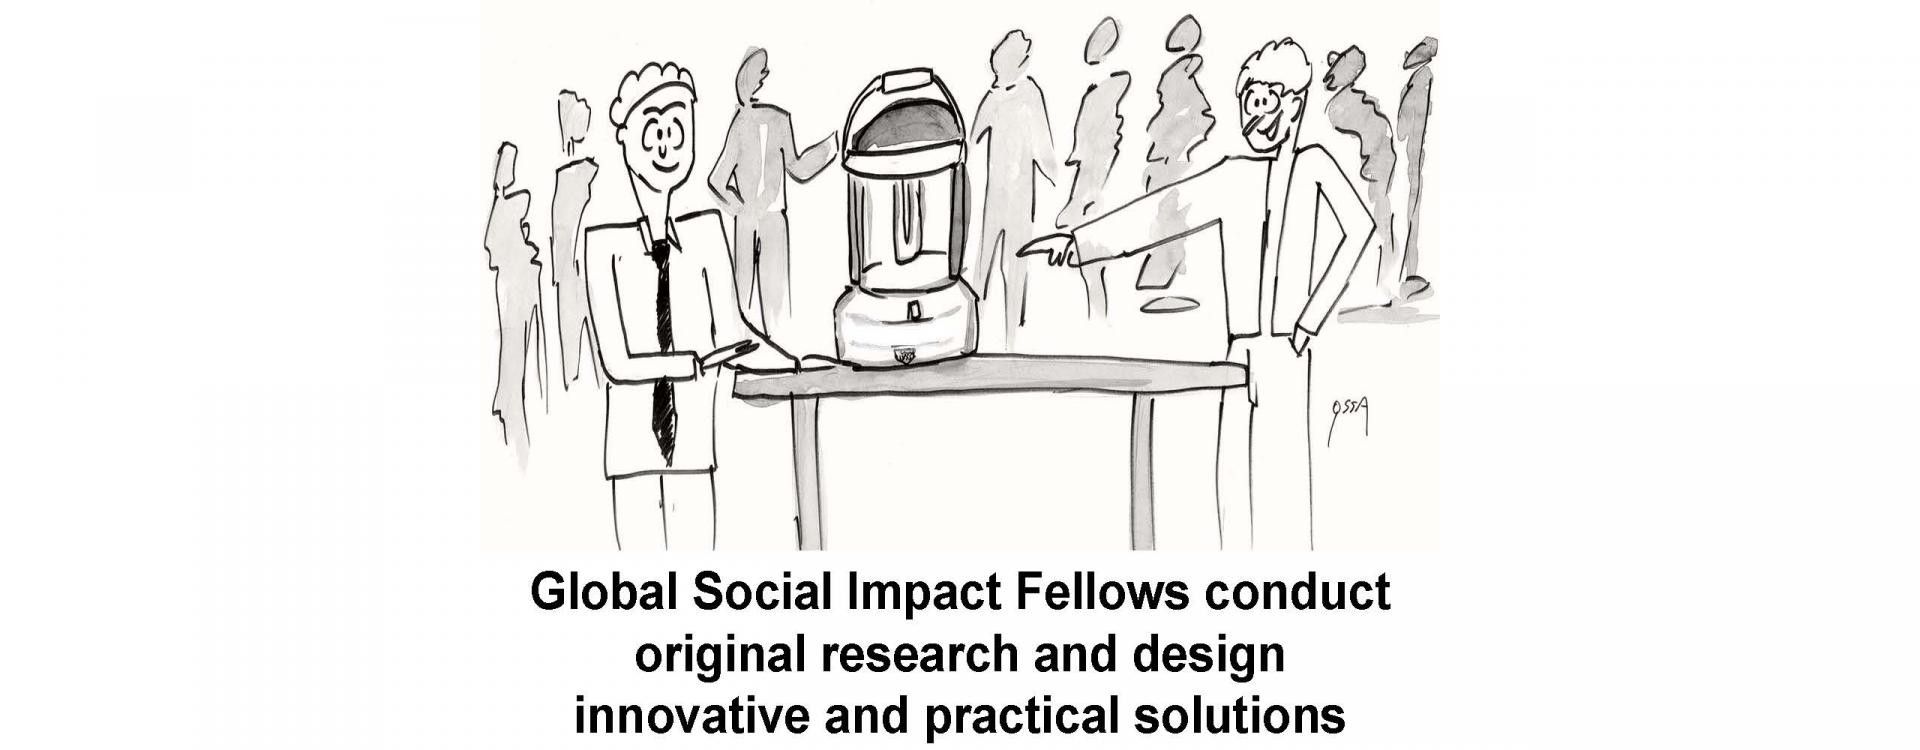 Global Social Impact Fellows conduct original research and design innovative and practical solutions